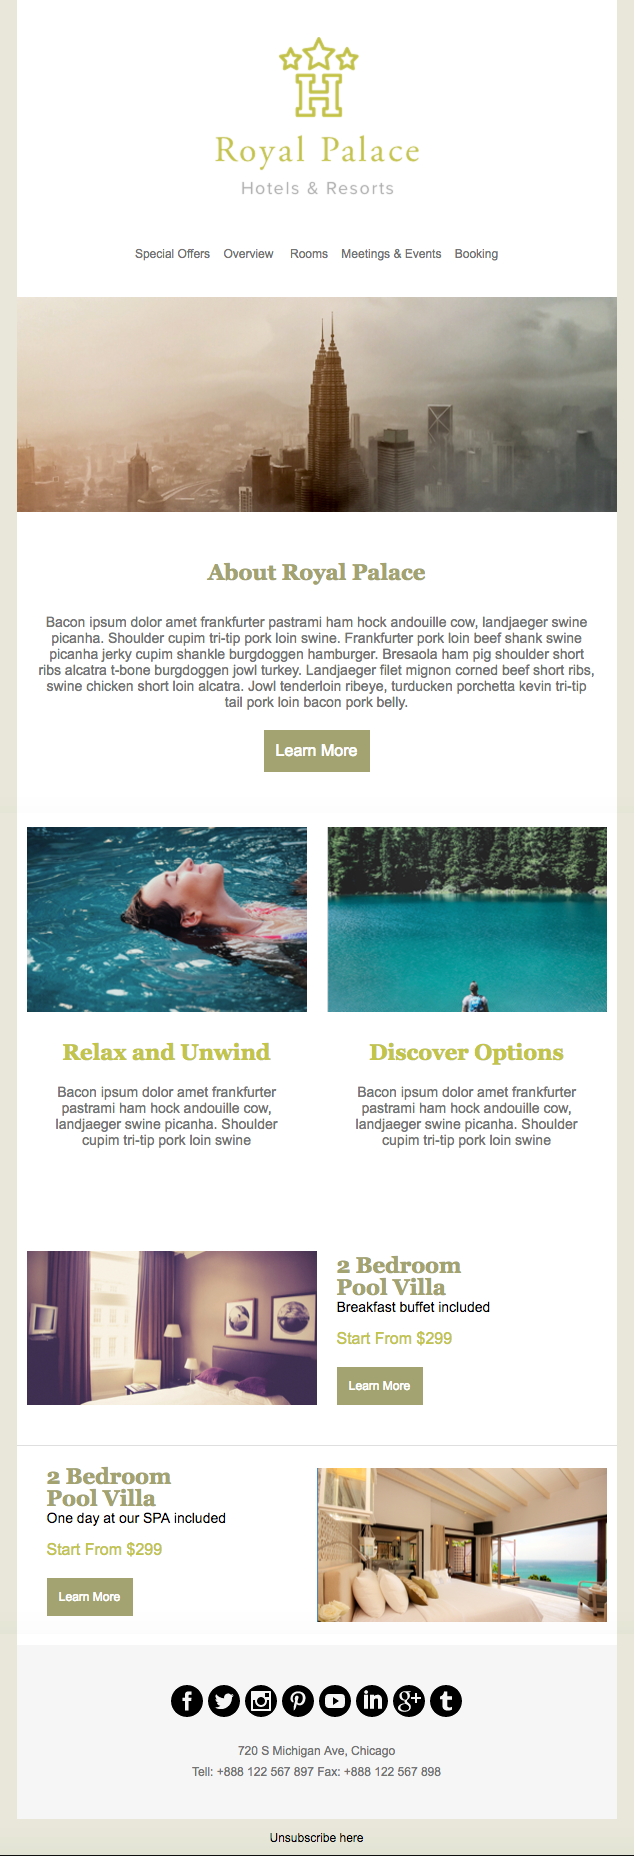 Hotel - email newsletter templates - Tips from the pros